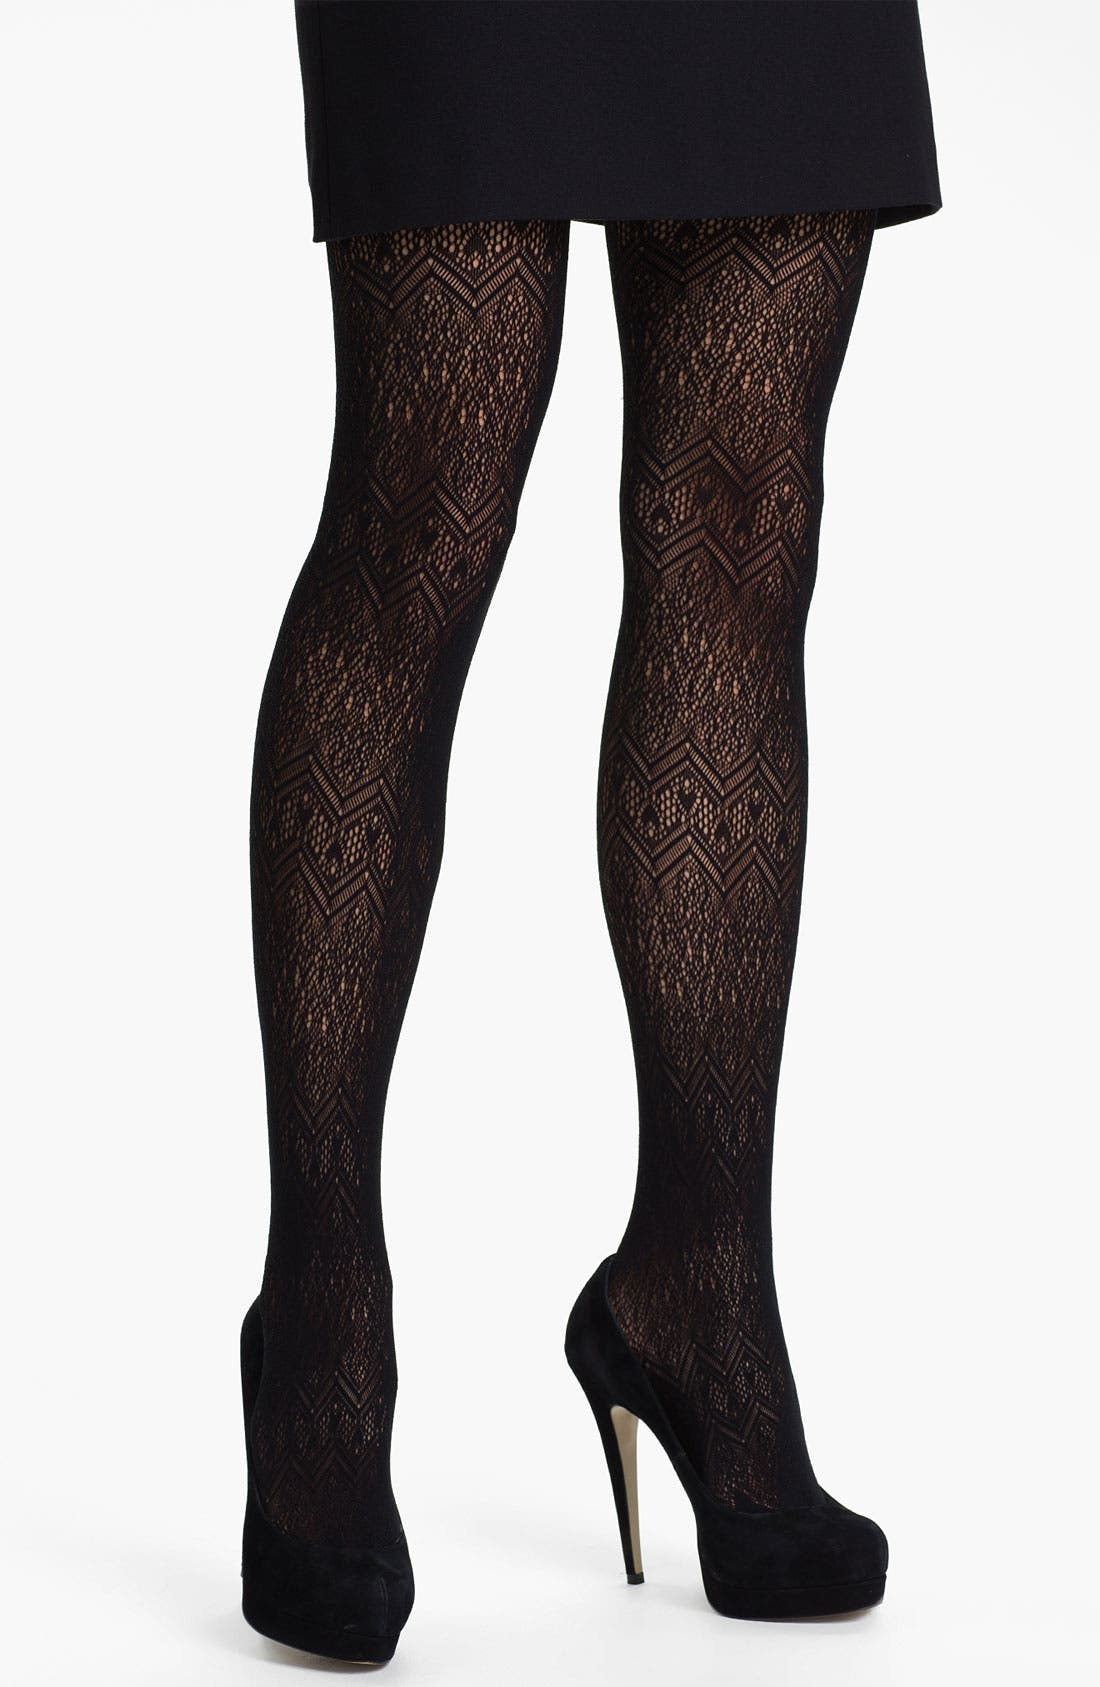 Main Image - Kensie 'Zigzag Mesh' Tights